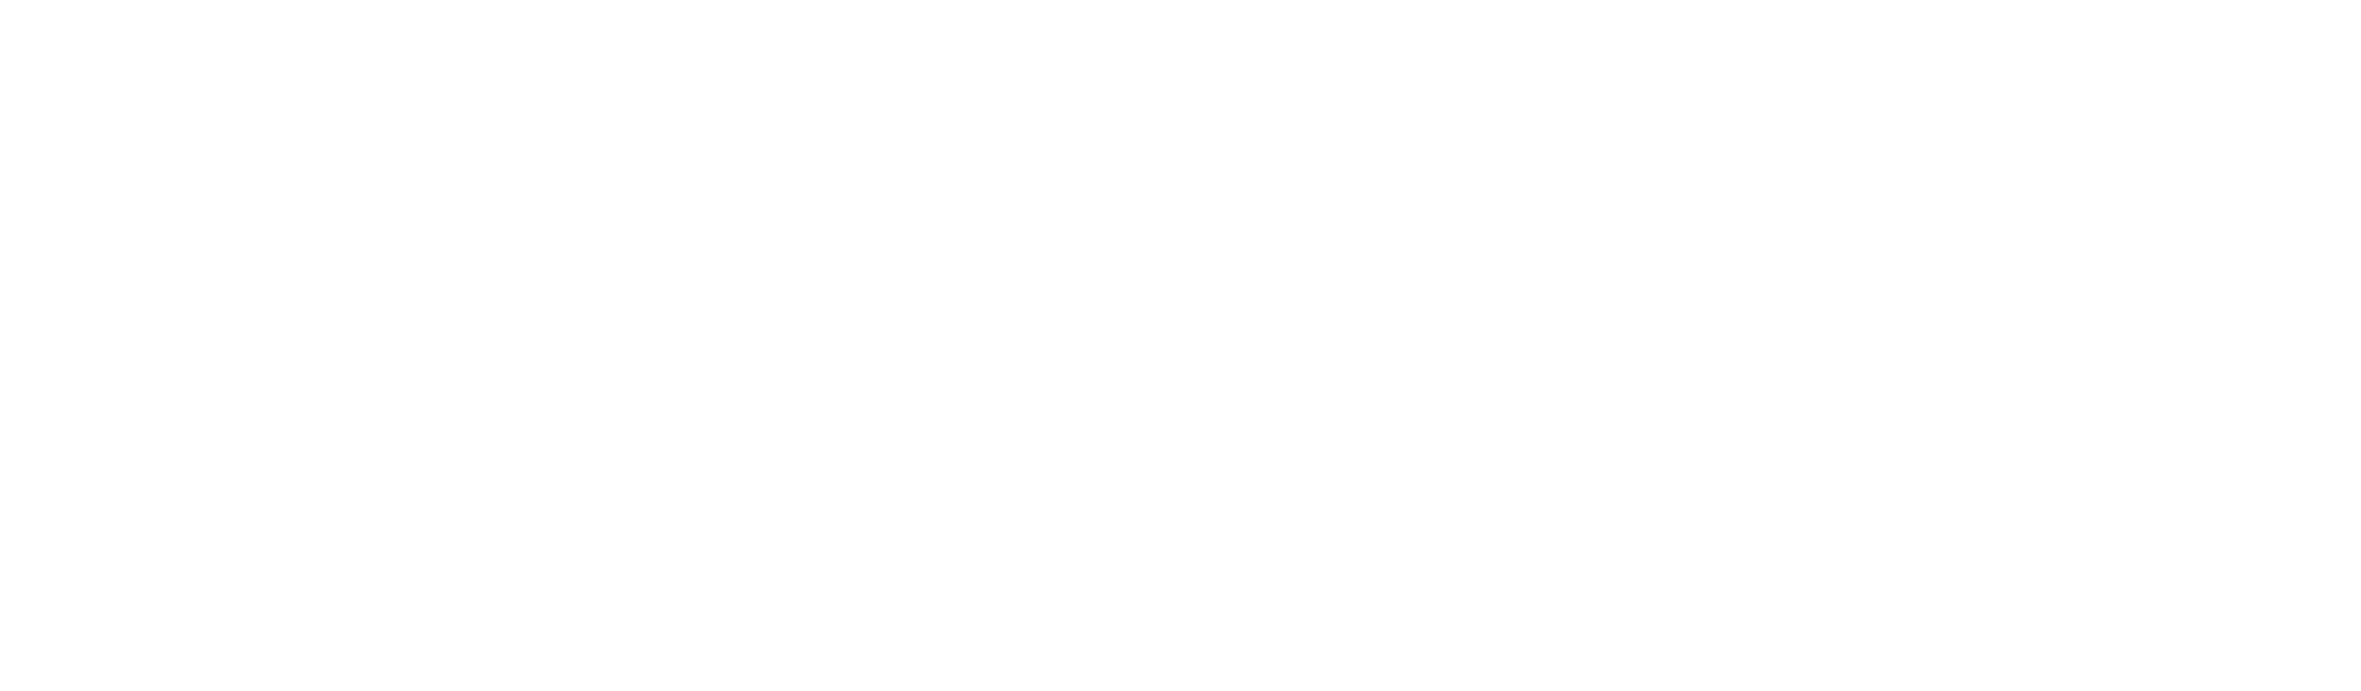 Northern Offshore Group